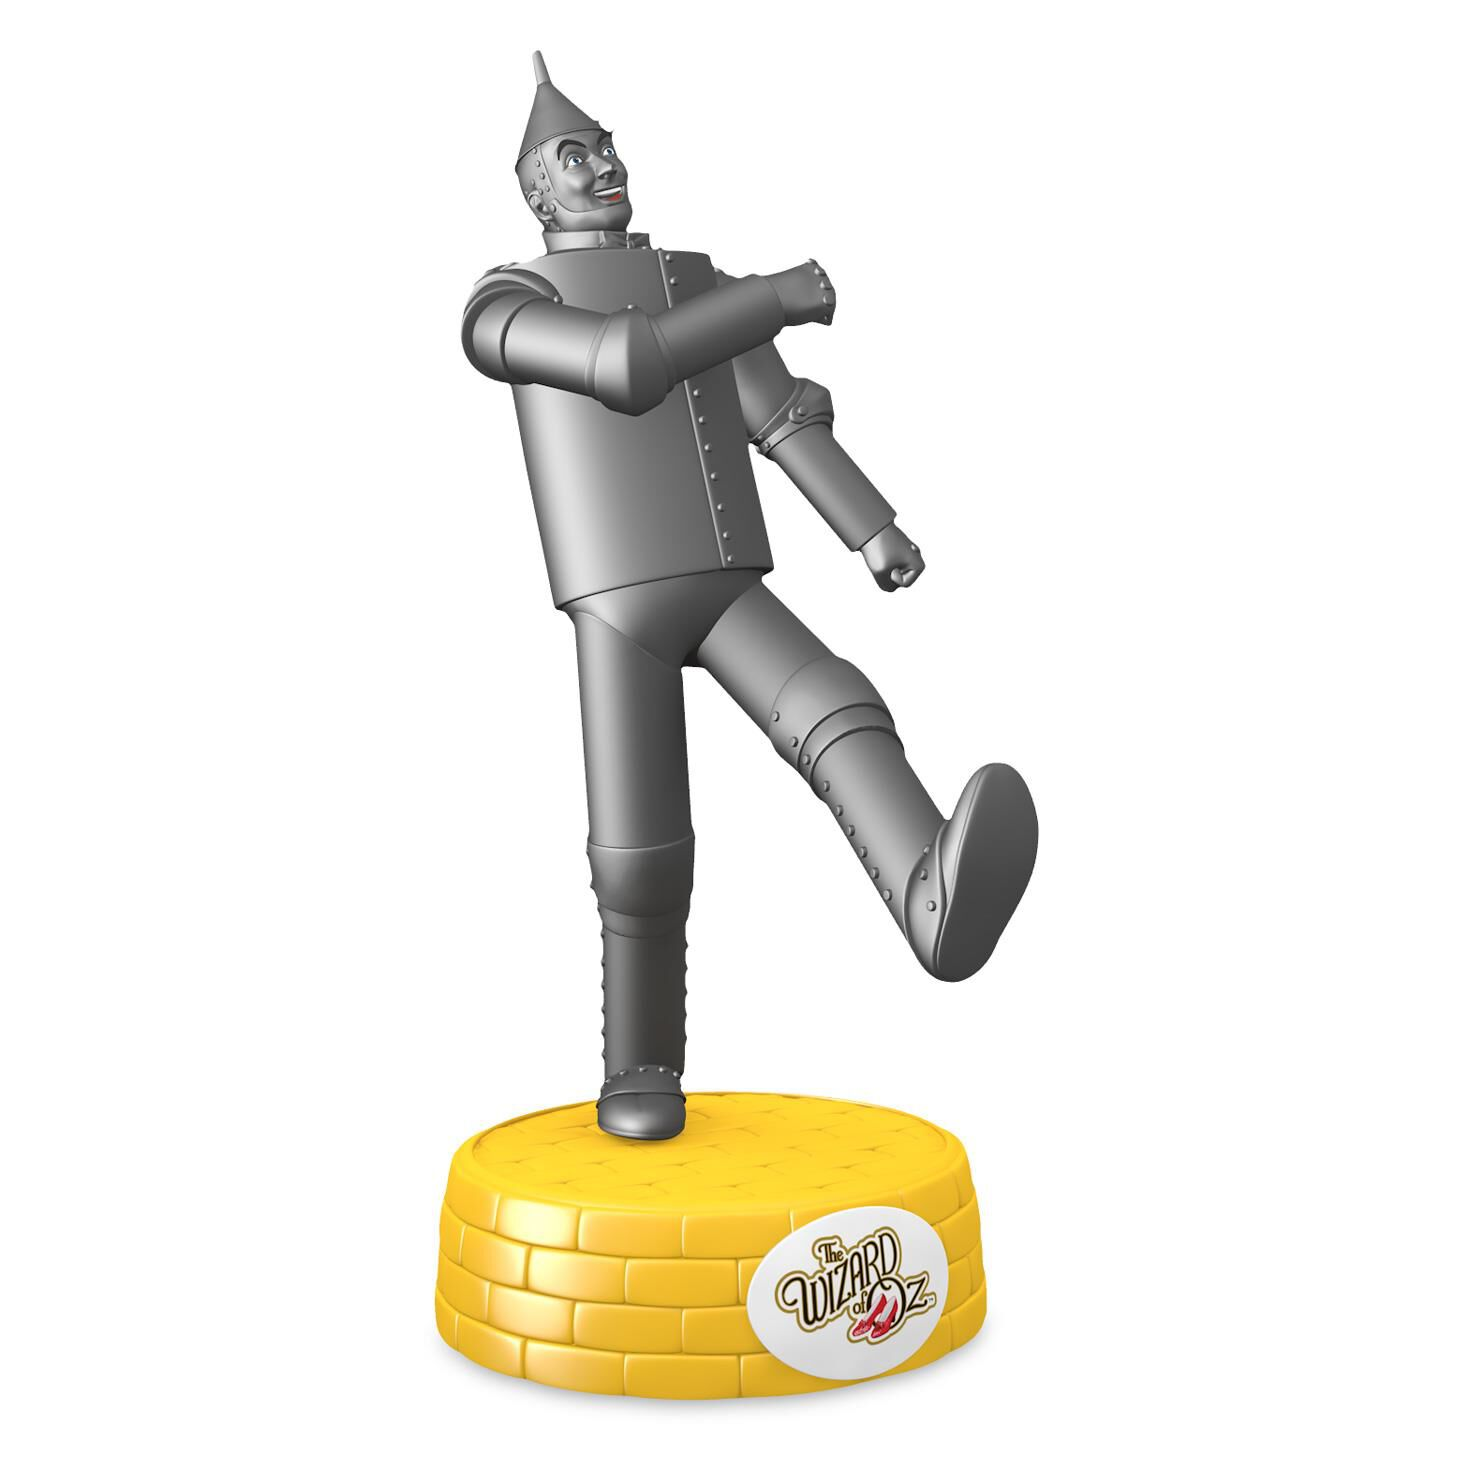 Wizard of oz christmas decorations uk - The Wizard Of Oz Tin Man If I Only Had A Heart Musical Ornament Keepsake Ornaments Hallmark